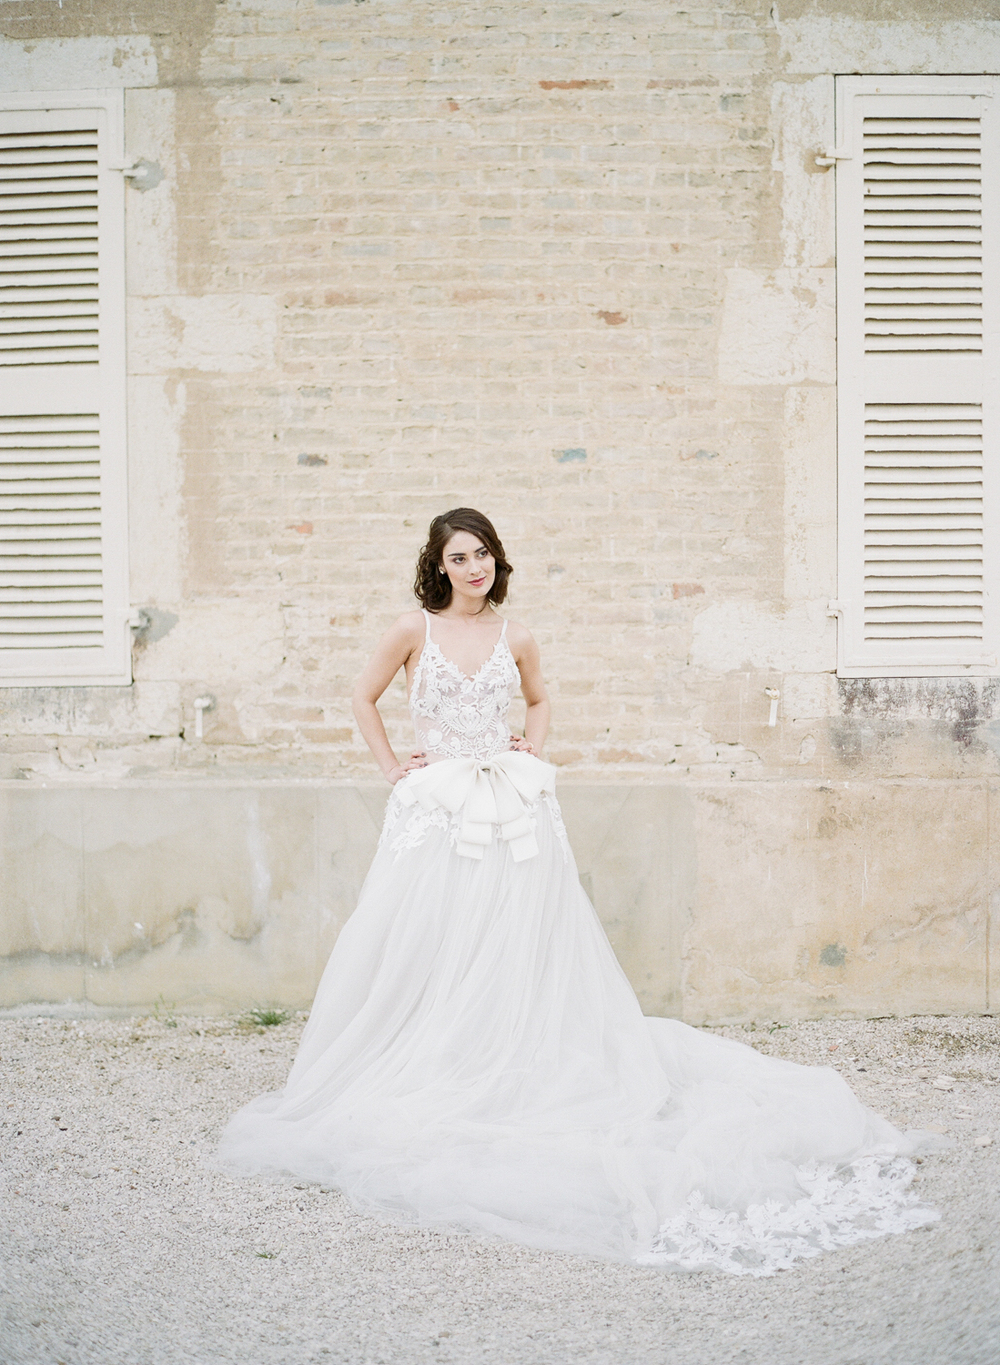 The bride poses in a dreamy Vera Wang gown in front of the chateau; photo by Sylvie Gil